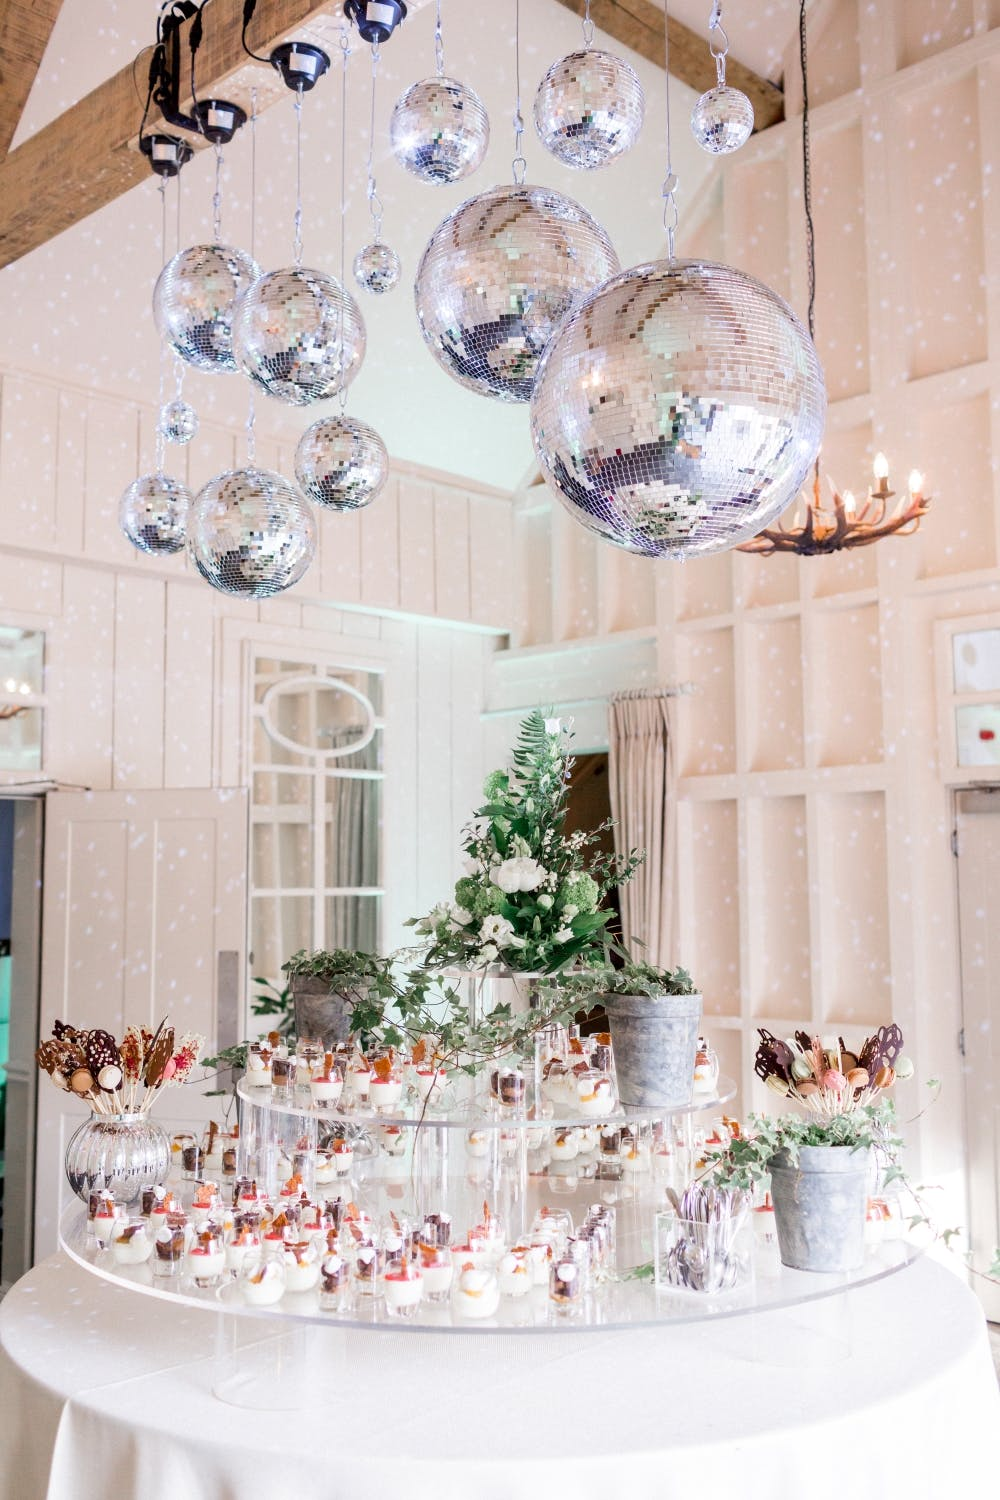 mirror-ball-in-barn-wedding-venue